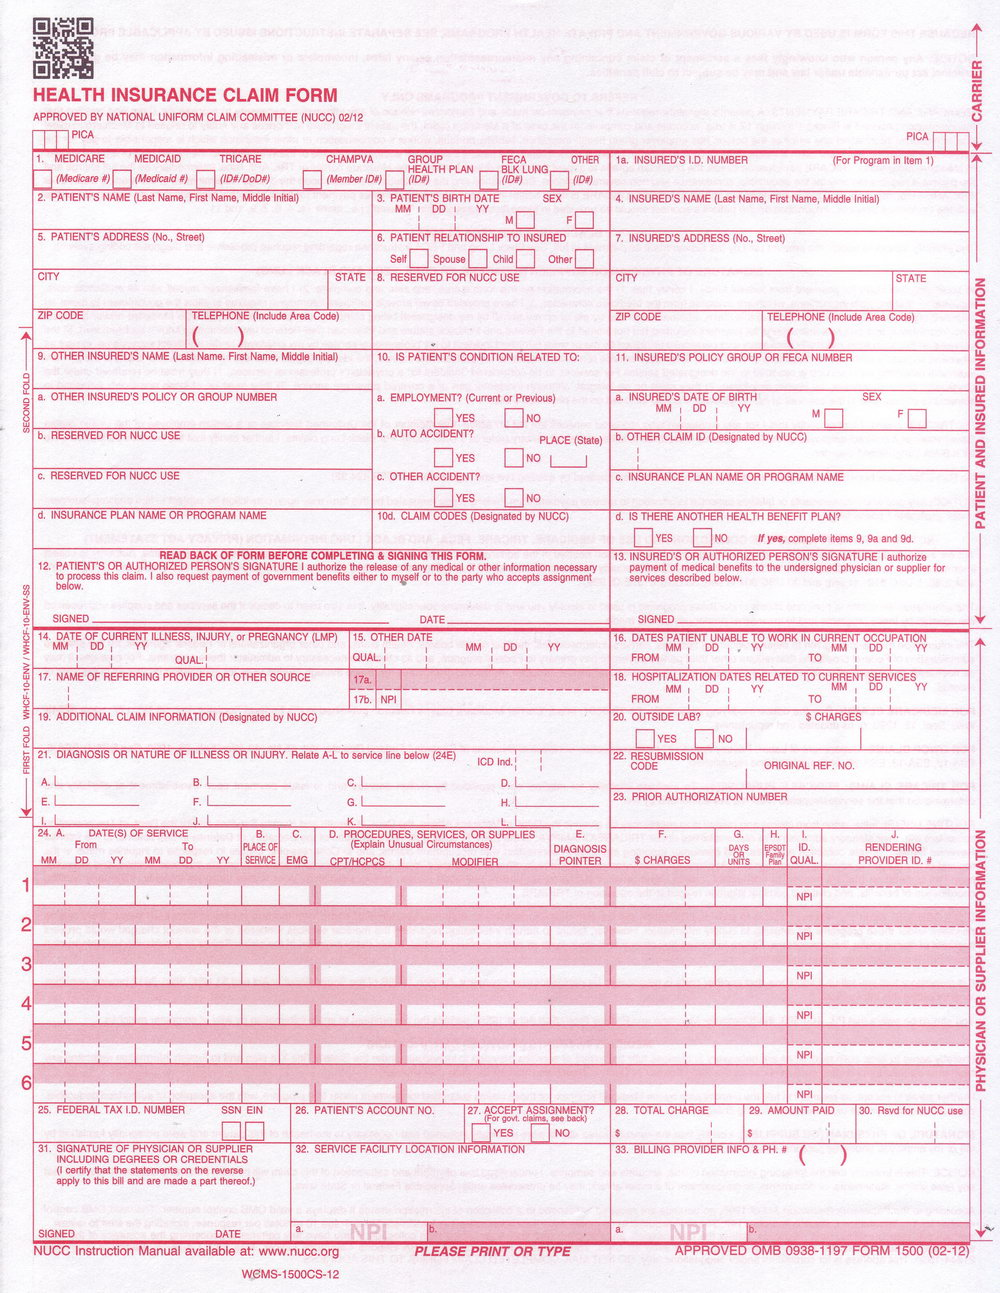 Completed Cms 1500 Form Sample